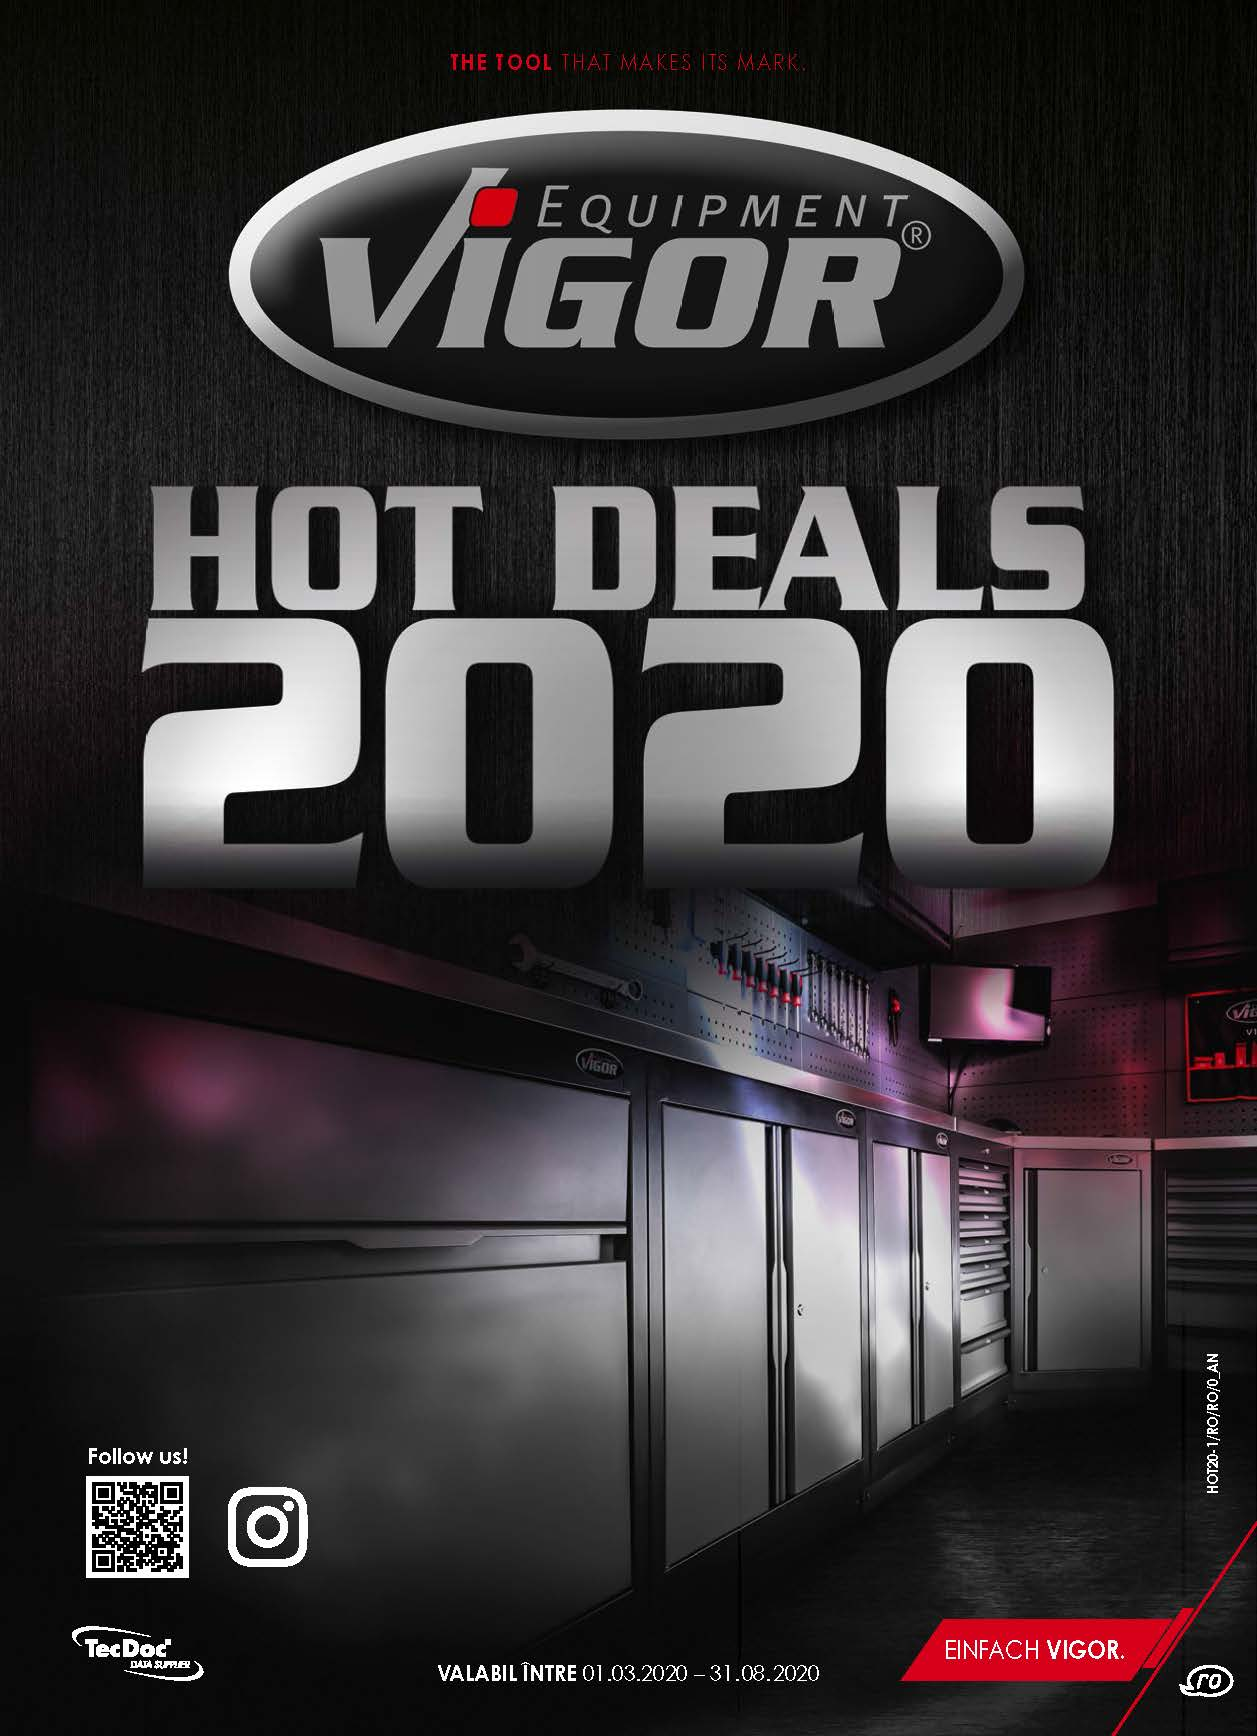 VIGOR HOT DEALS